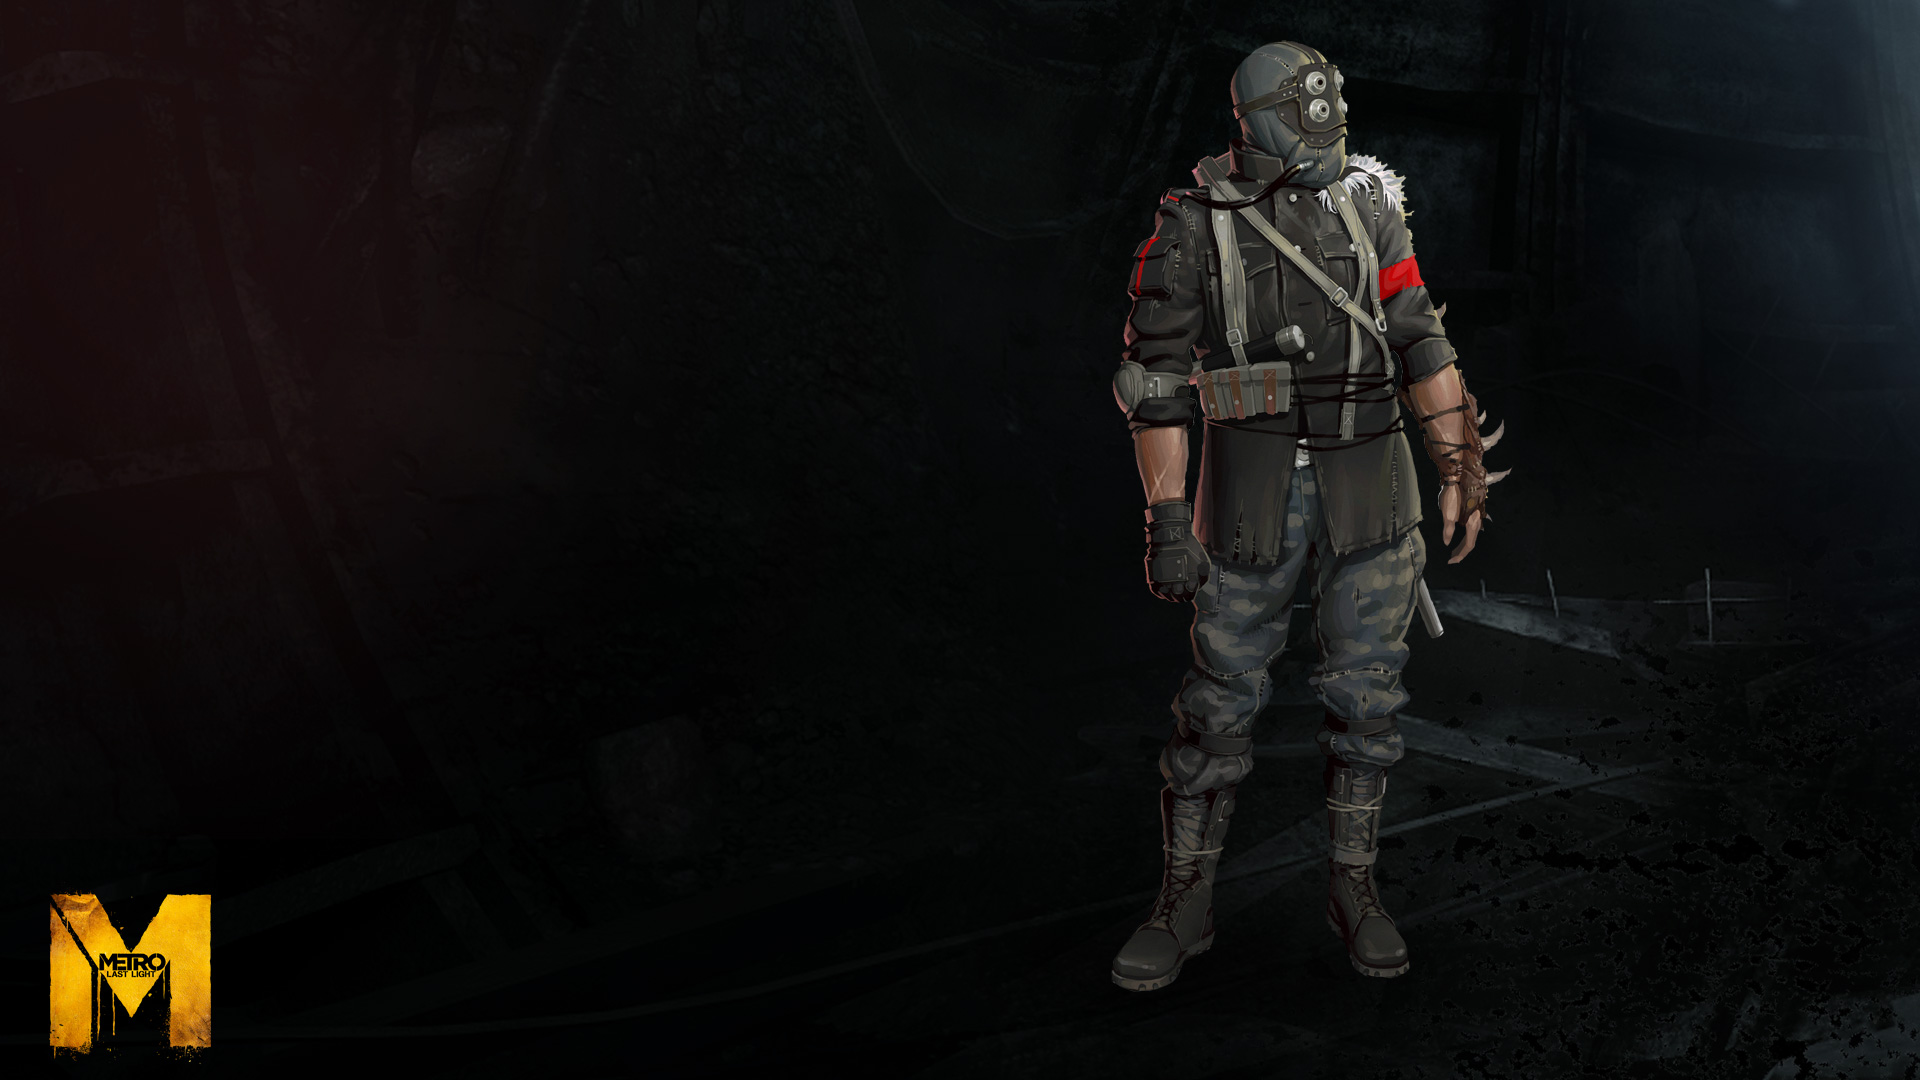 metro 2033 reich related - photo #16